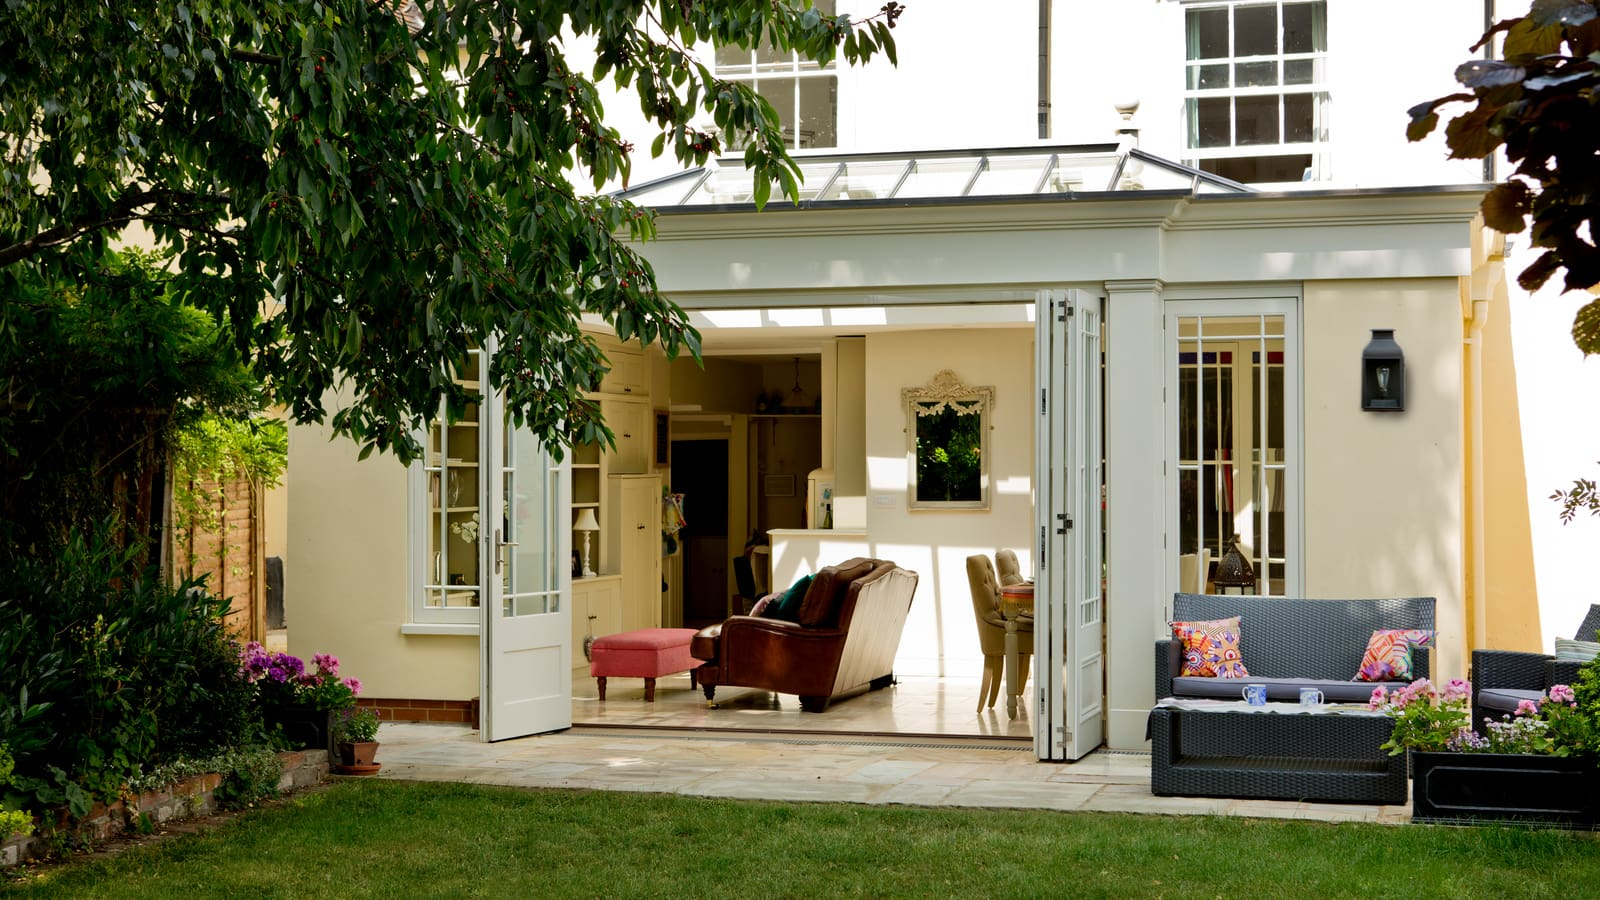 External View of Orangery from the garden